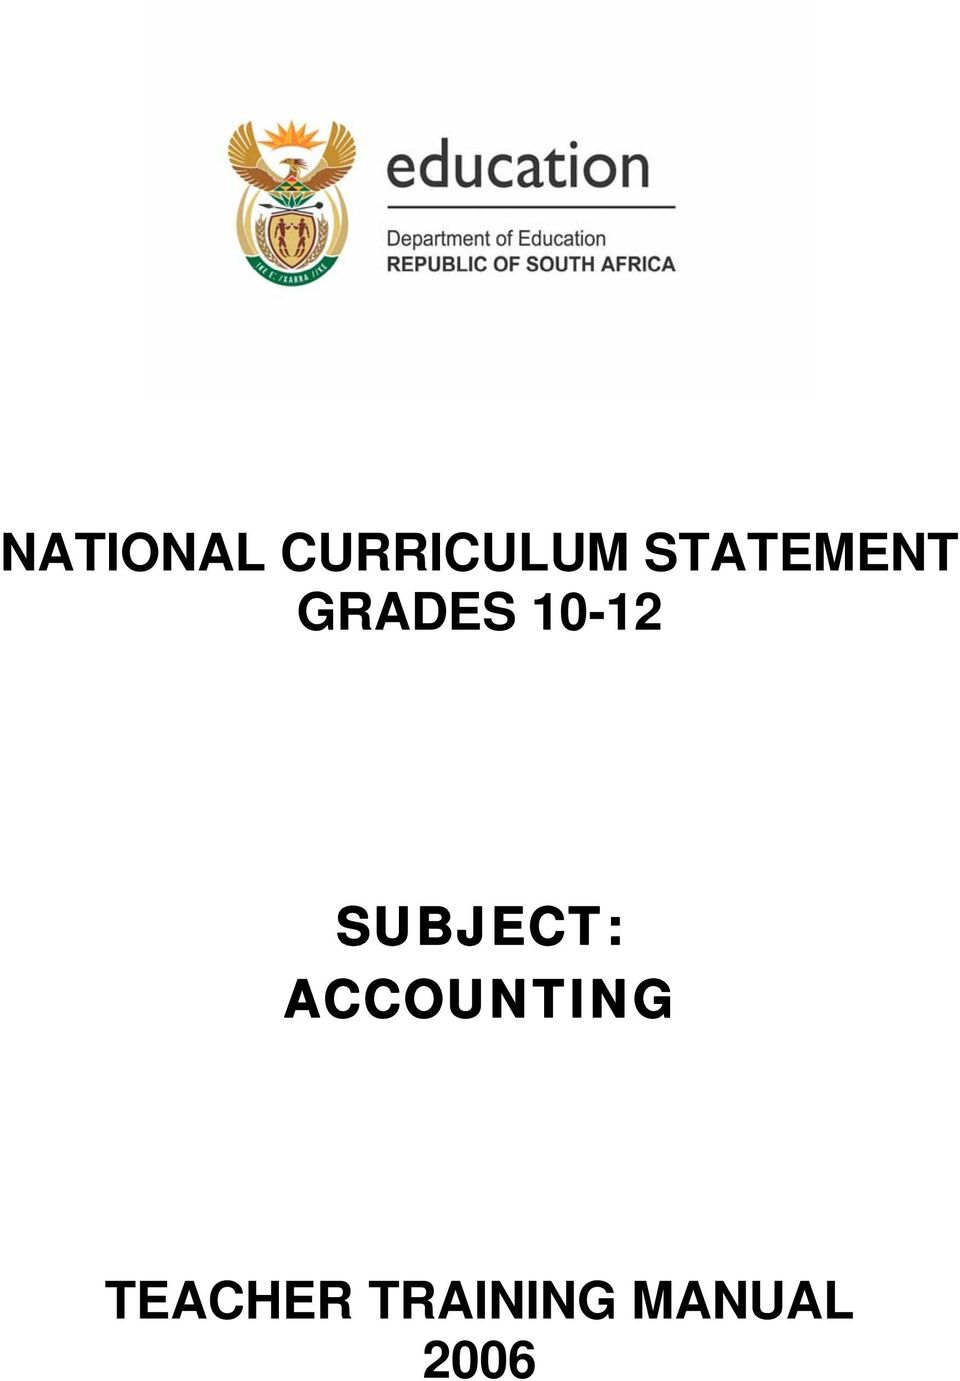 SUBJECT: ACCOUNTING